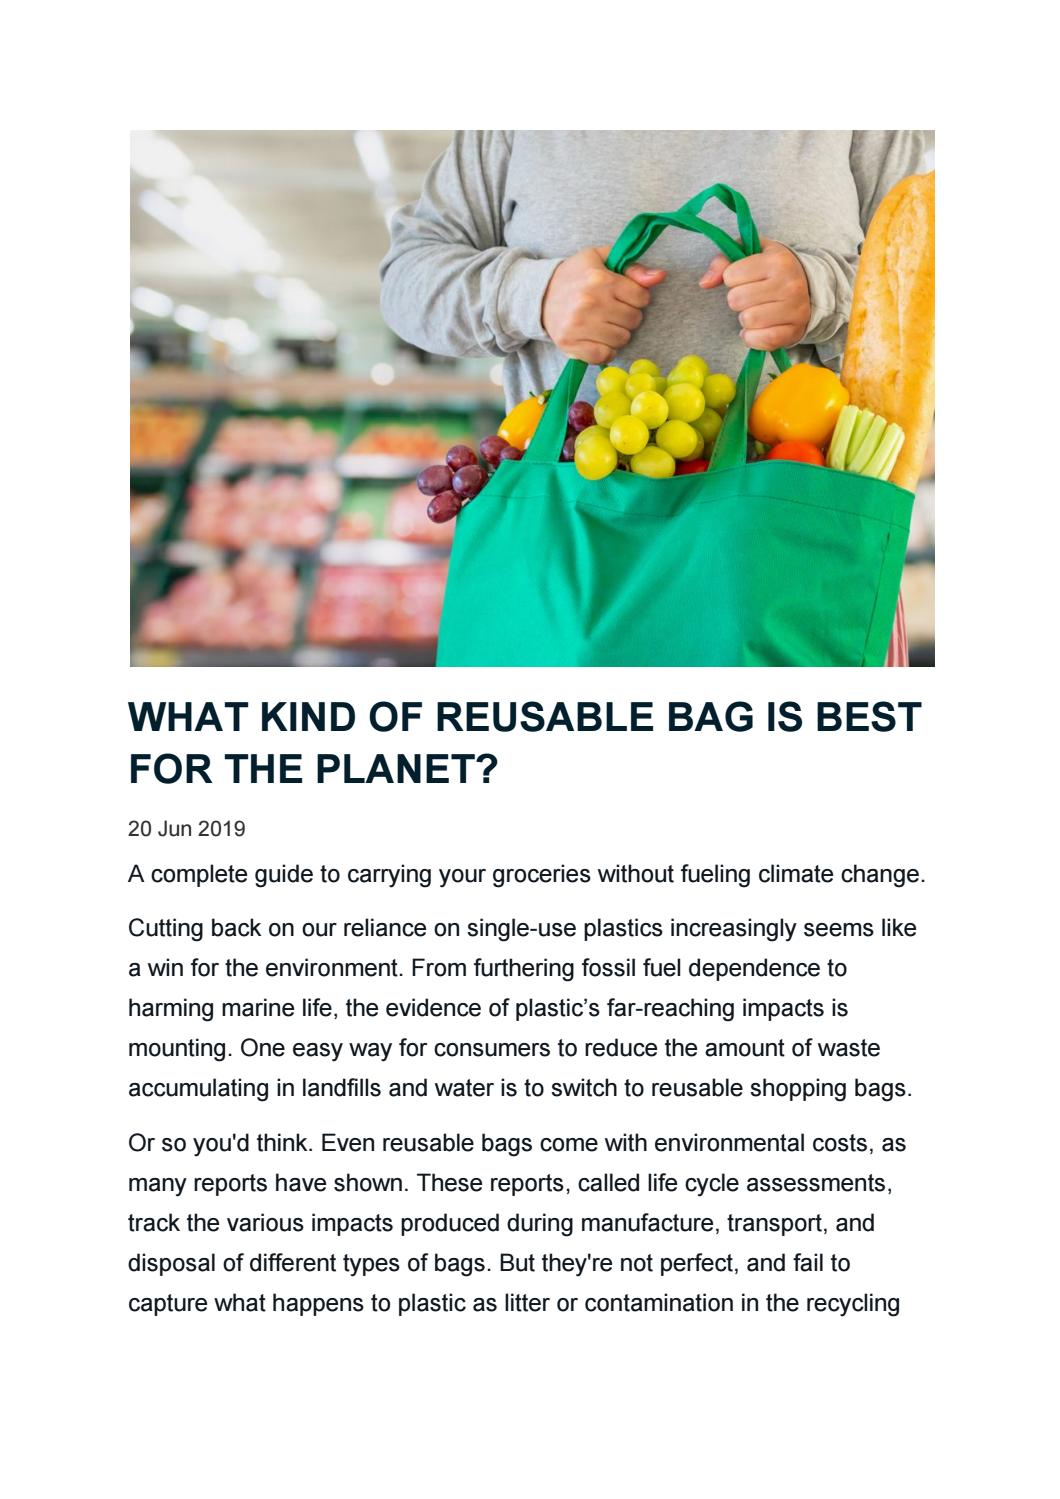 WHAT KIND OF REUSABLE BAG IS BEST FOR THE PLANET? by HaulTail APP